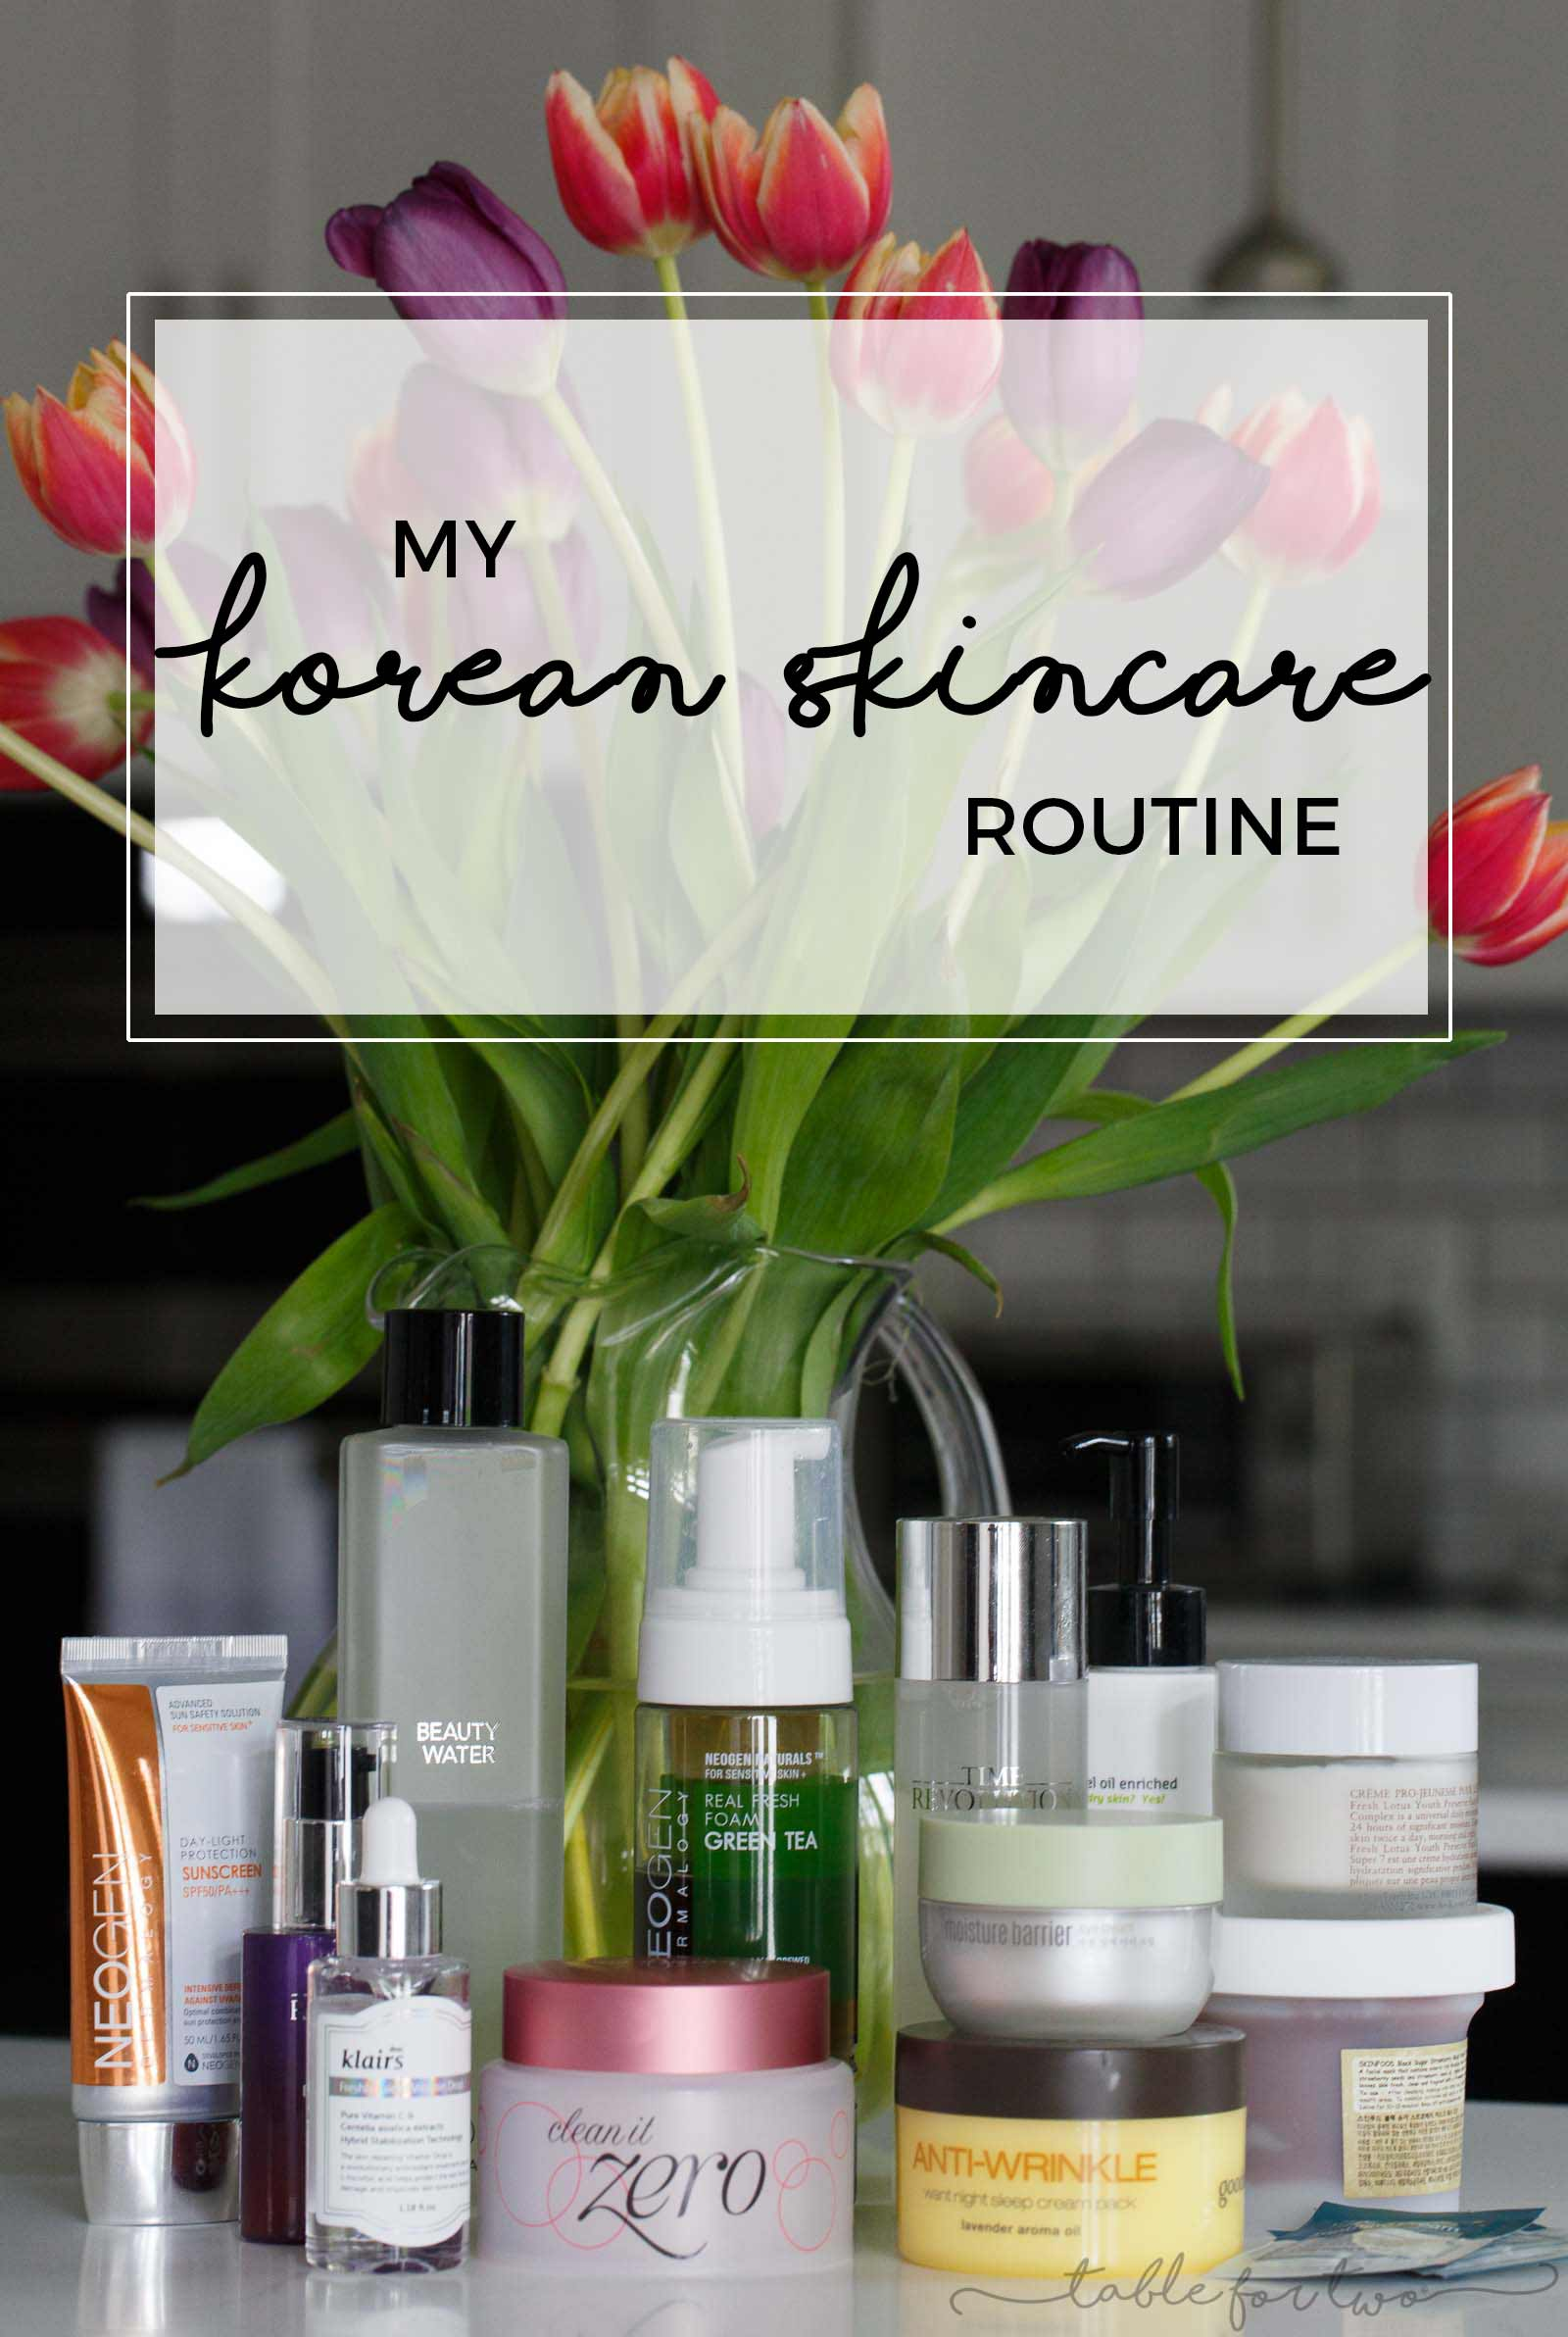 My Korean skincare routine that helps keep my face hydrated and moisturized. As a result, I have supple and dewy skin throughout the day that will hopefully combat the signs of aging!